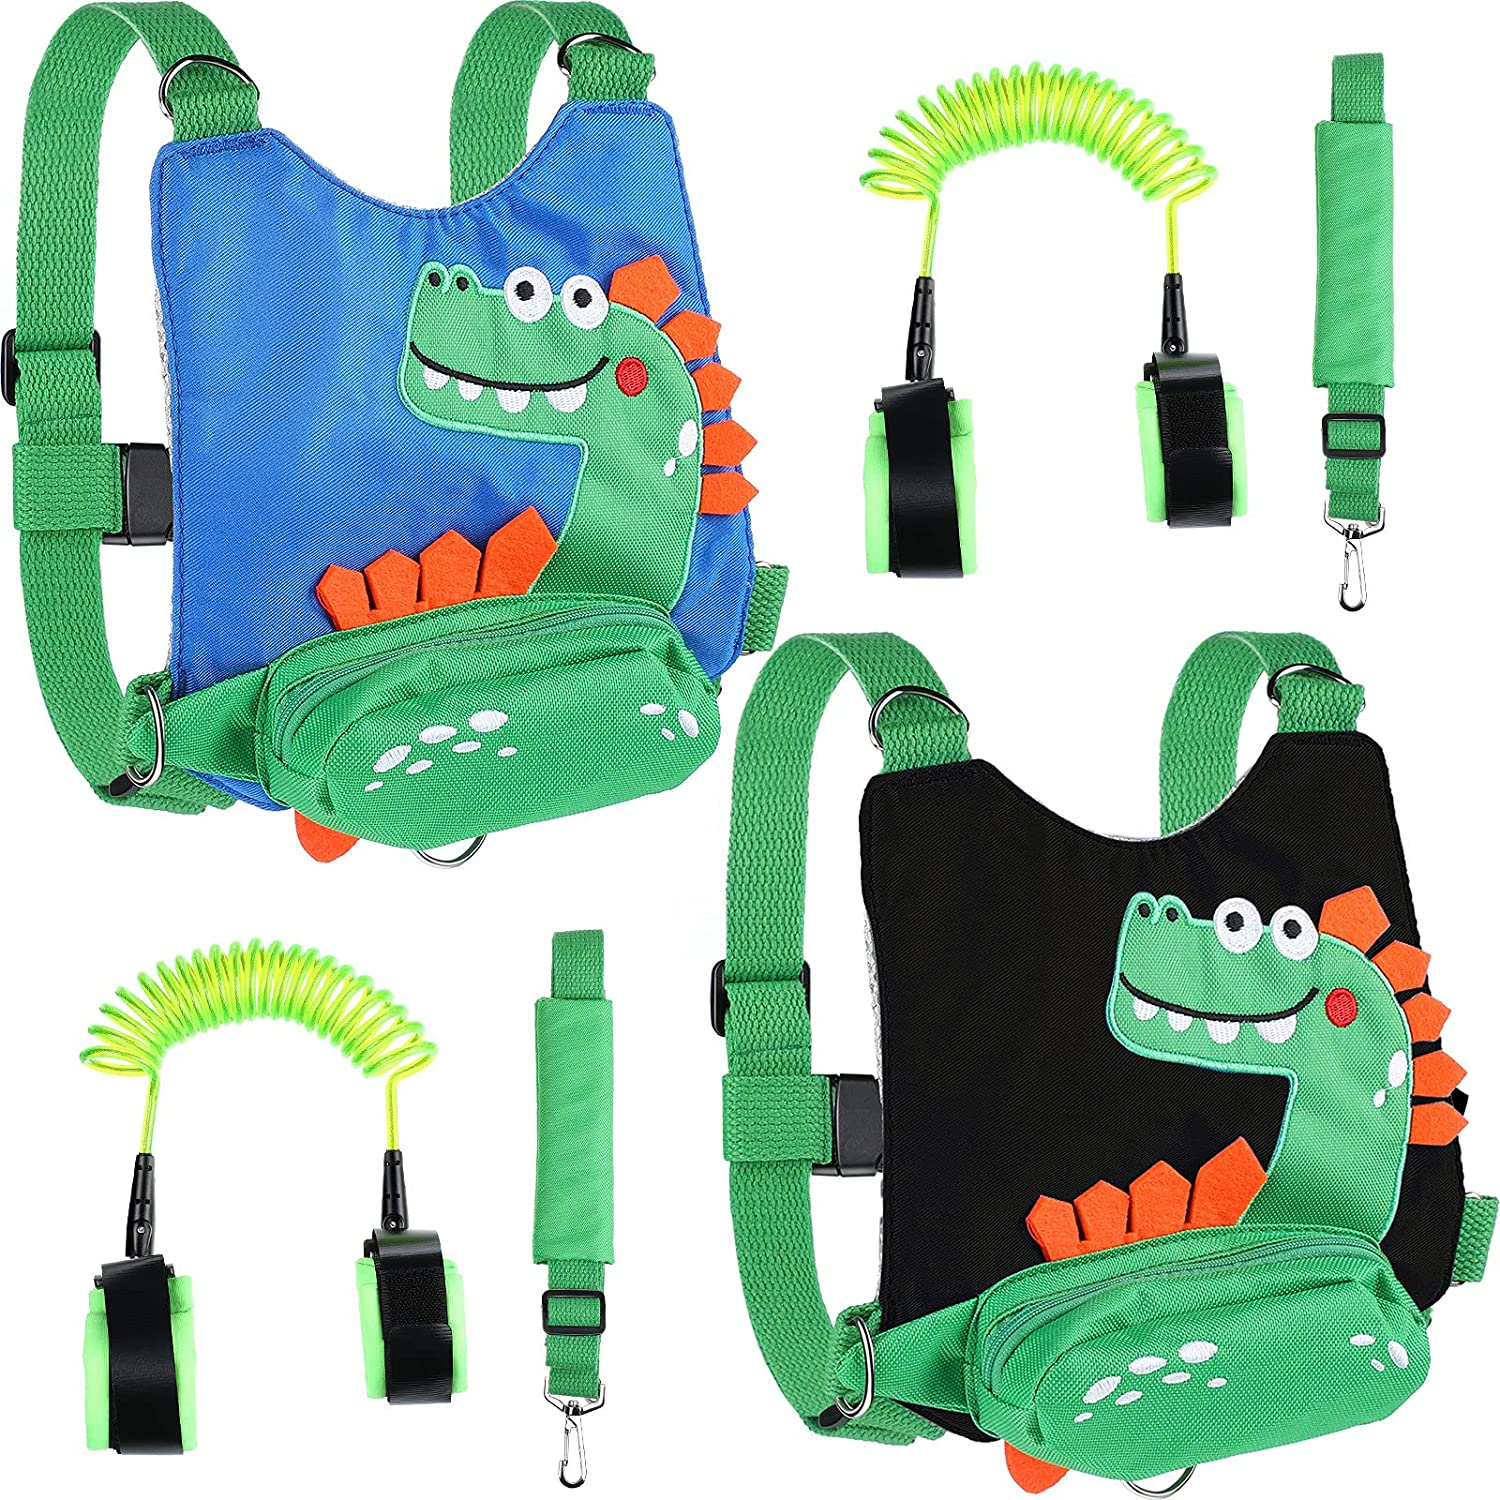 2 Packs 4 in 1 Toddler Harness Leashes Anti Lost Wrist Link for Toddlers Backpack Safety Leash Baby Child Toddler Kids Harness with Leash for Walking (Black and Blue)